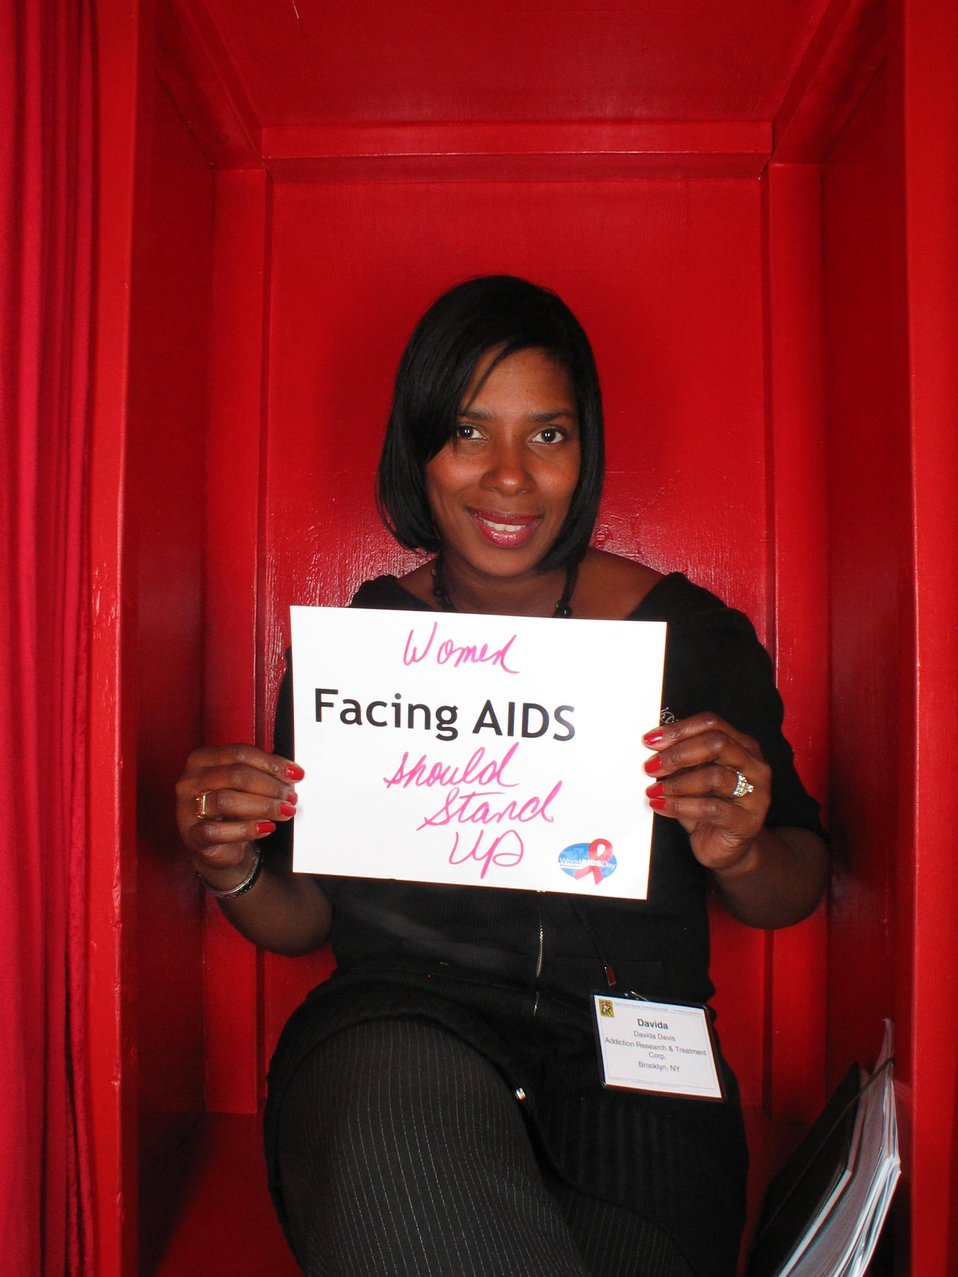 Women Facing AIDS should stand up